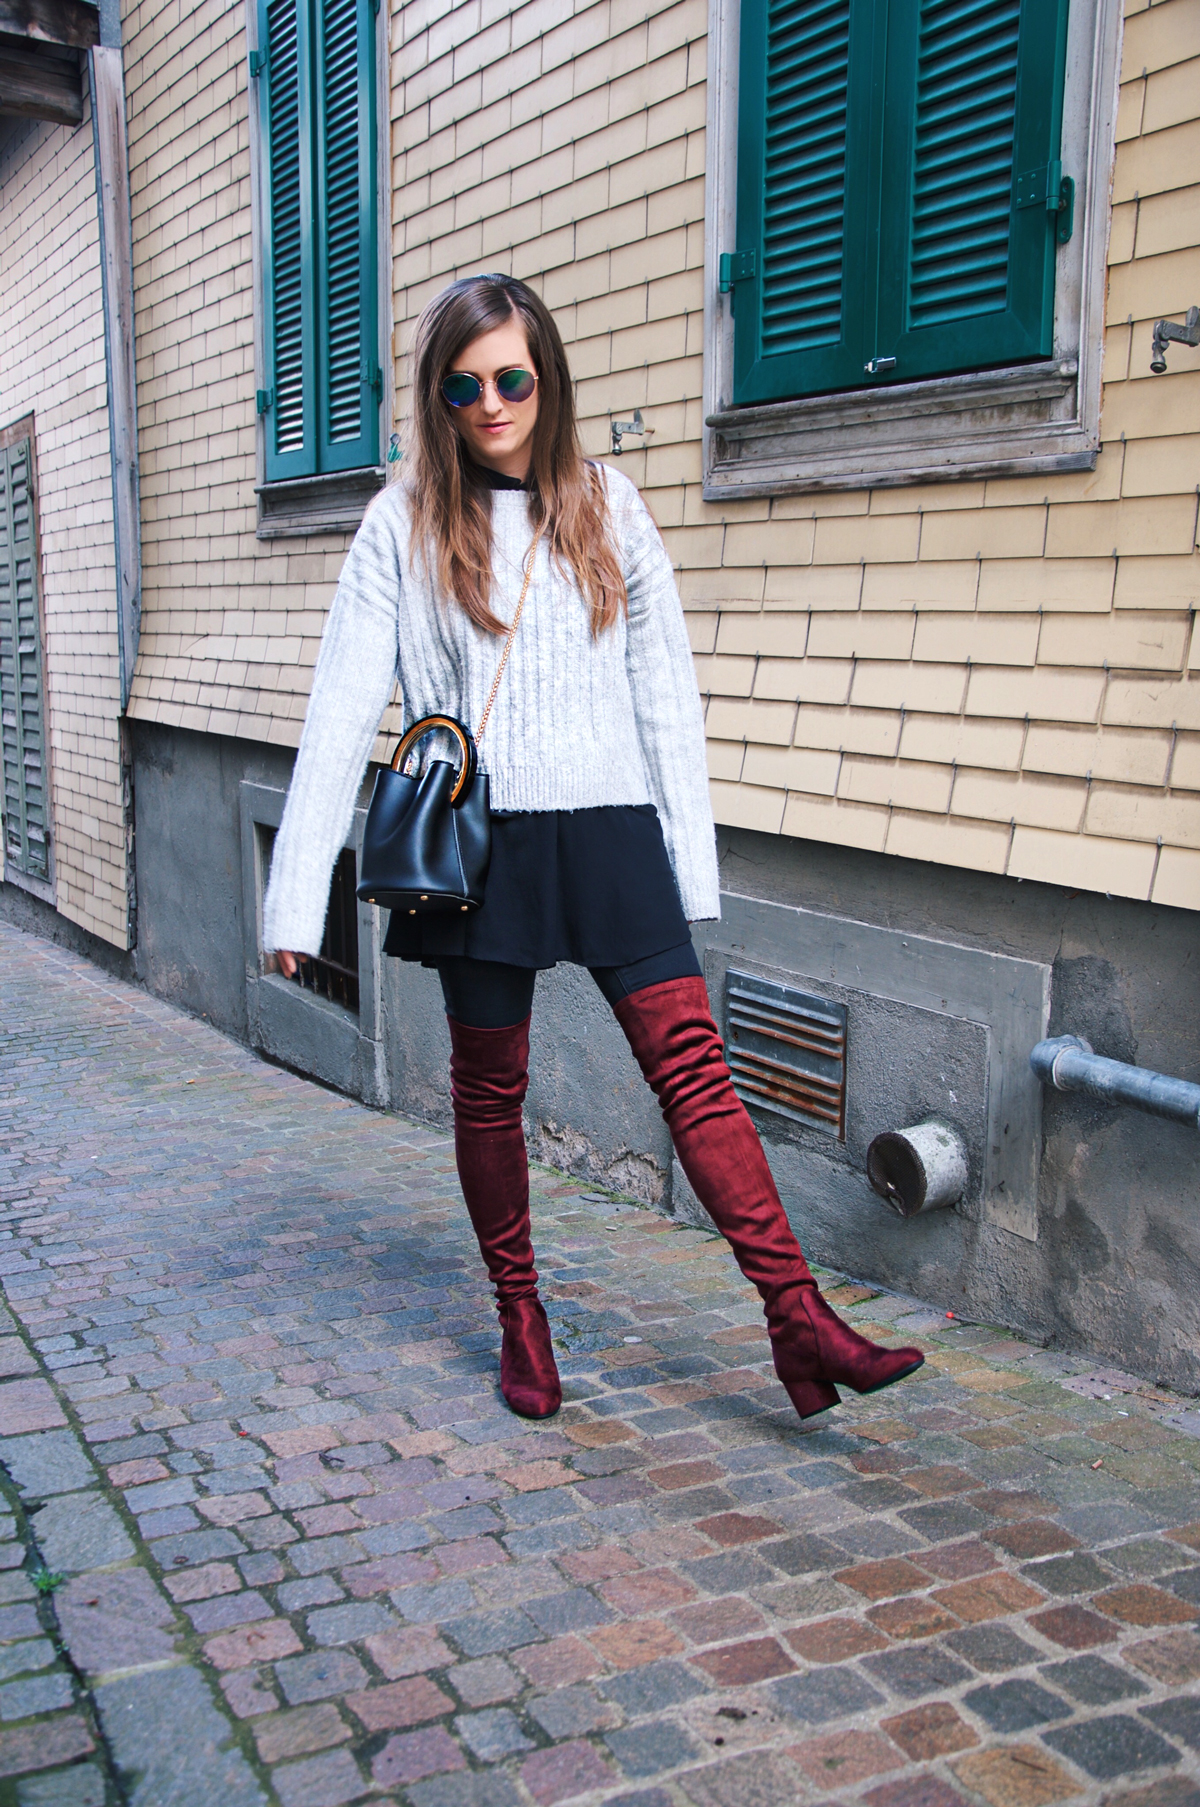 Red Boots Are This Fall's Must-Have Red Boots Are This Fall's Must-Have new foto